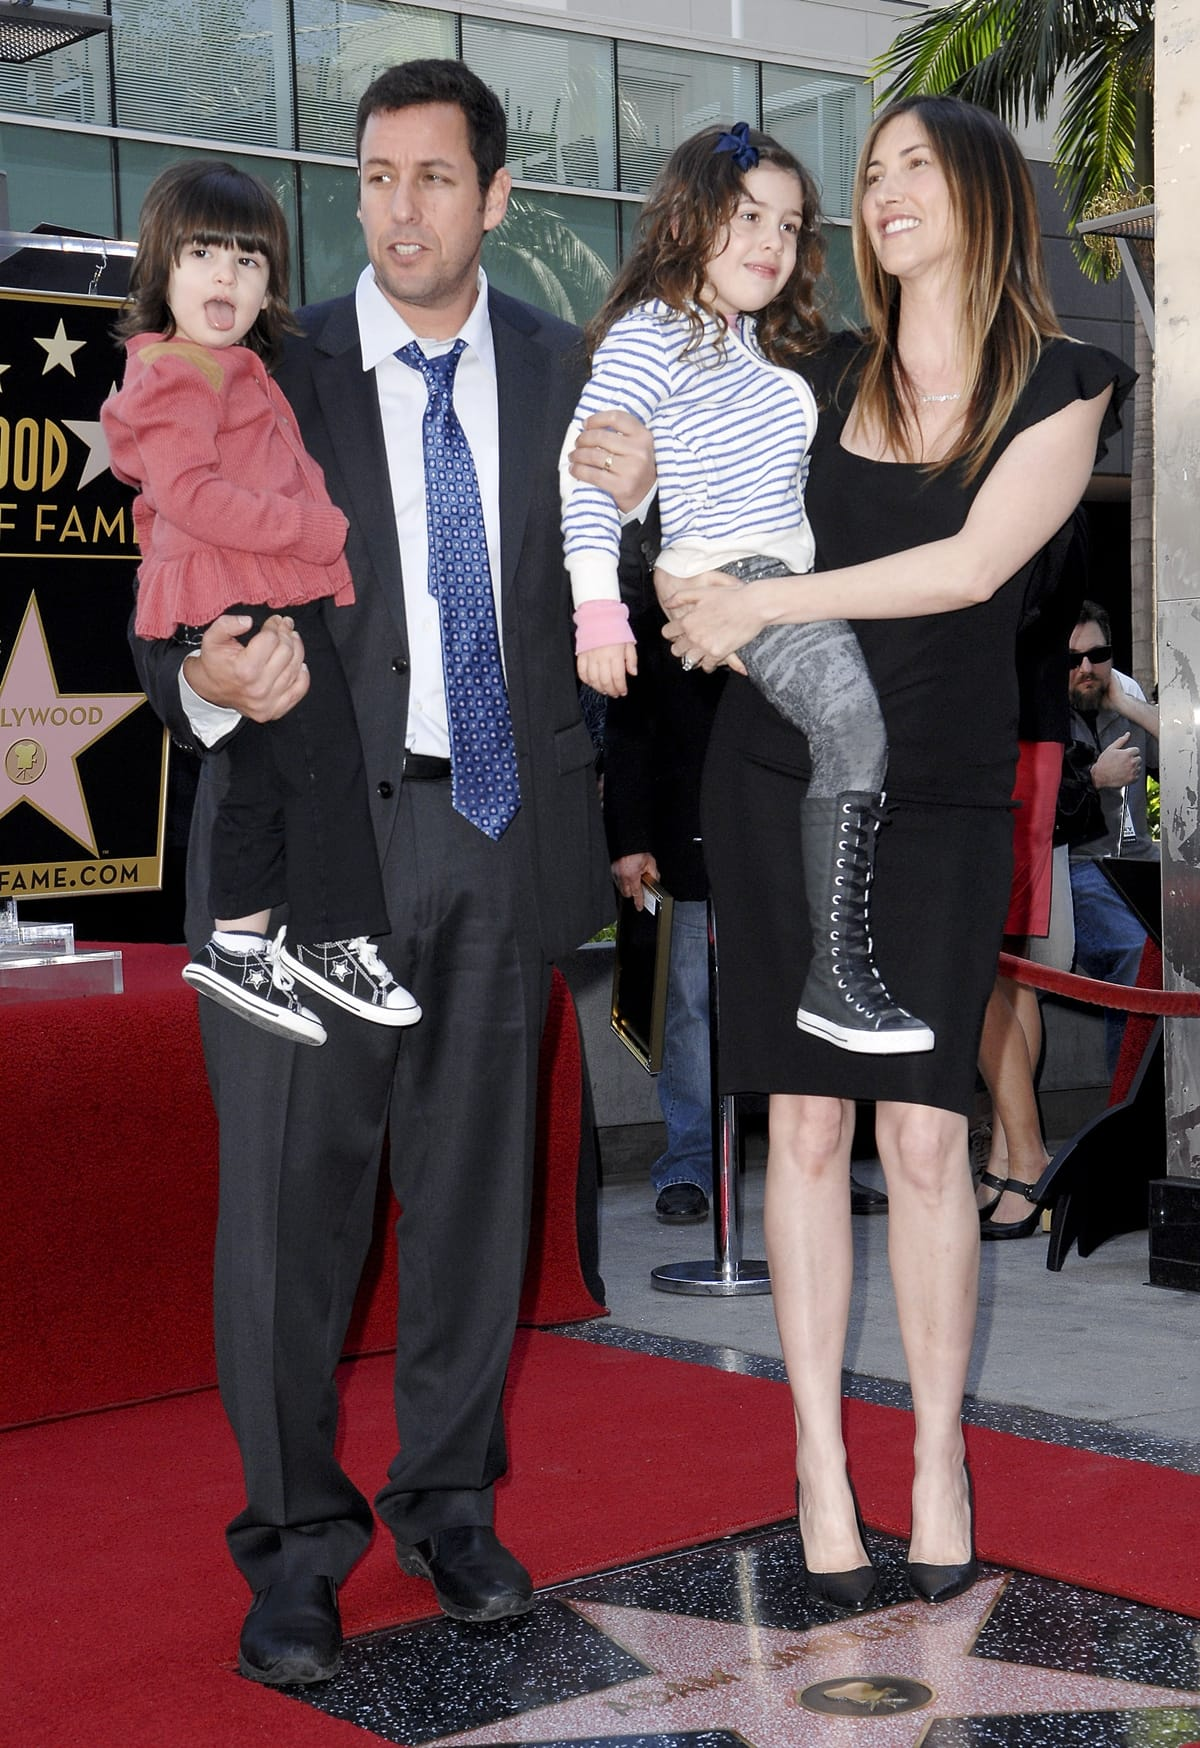 Adam Sandler with his wife Jackie and daughters Sadie and Sunny celebrate his star on the Hollywood Walk of Fame